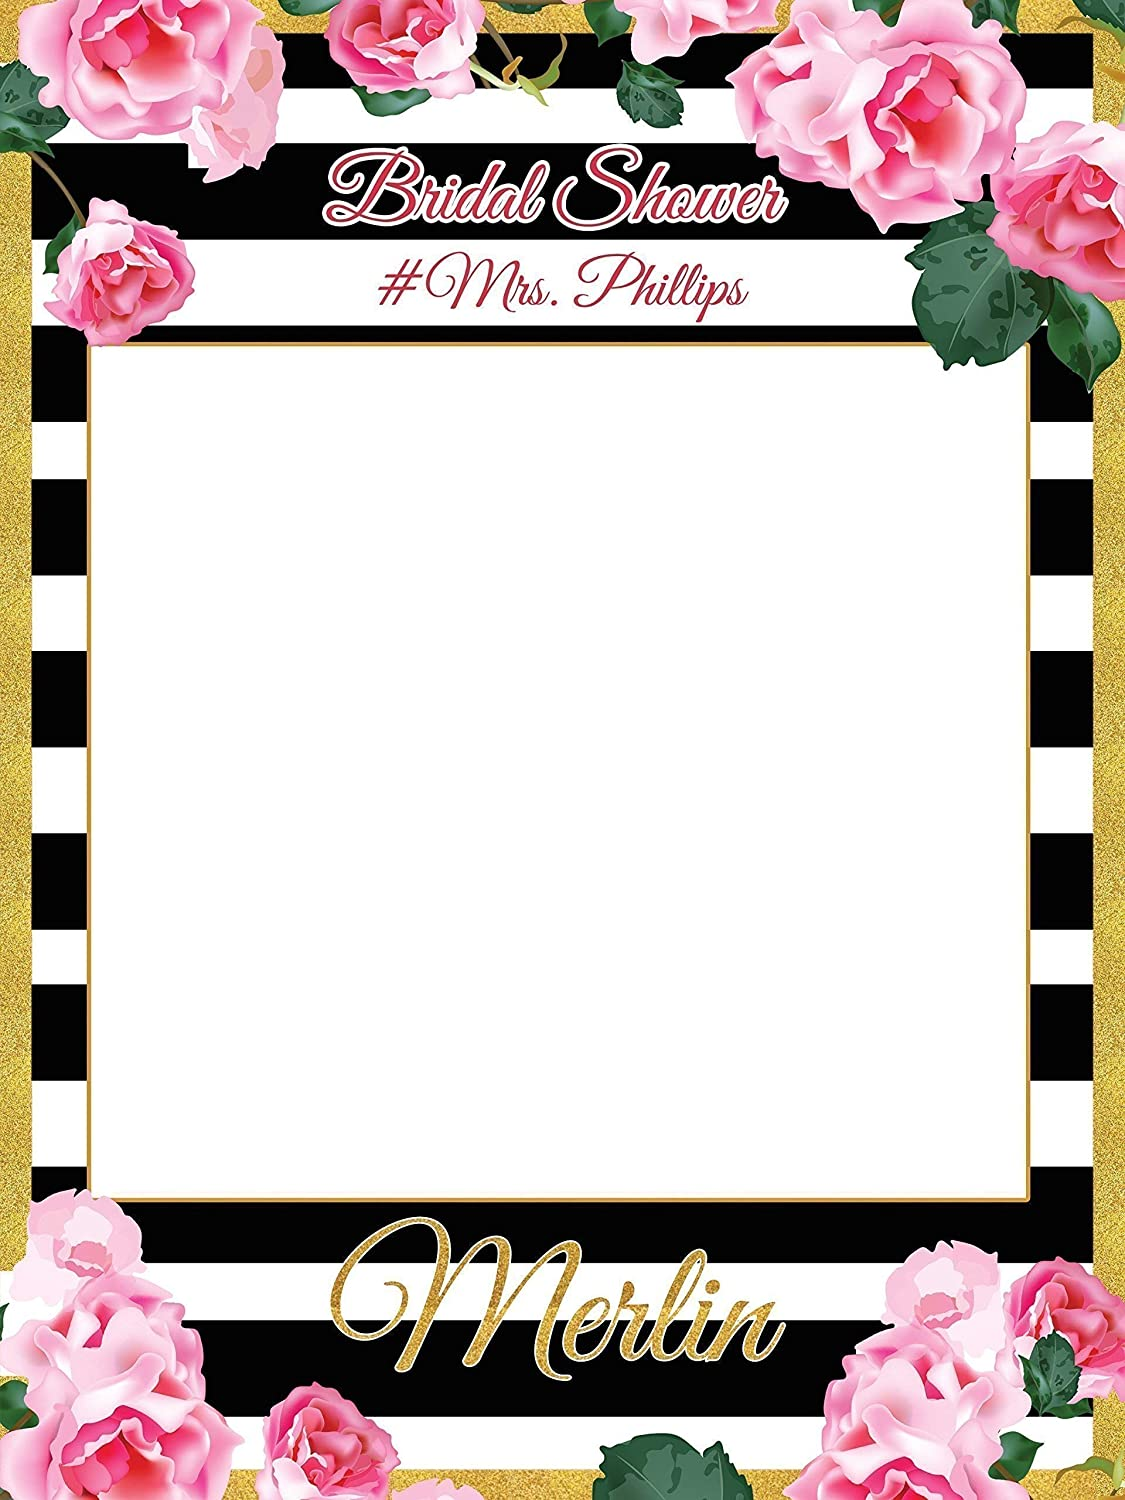 Flower Bridal Shower Photobooth Black White Photo Booth Prop Sizes 36x24 48x36 Personalized Bridal Shower Decorations Wedding Party Bride To